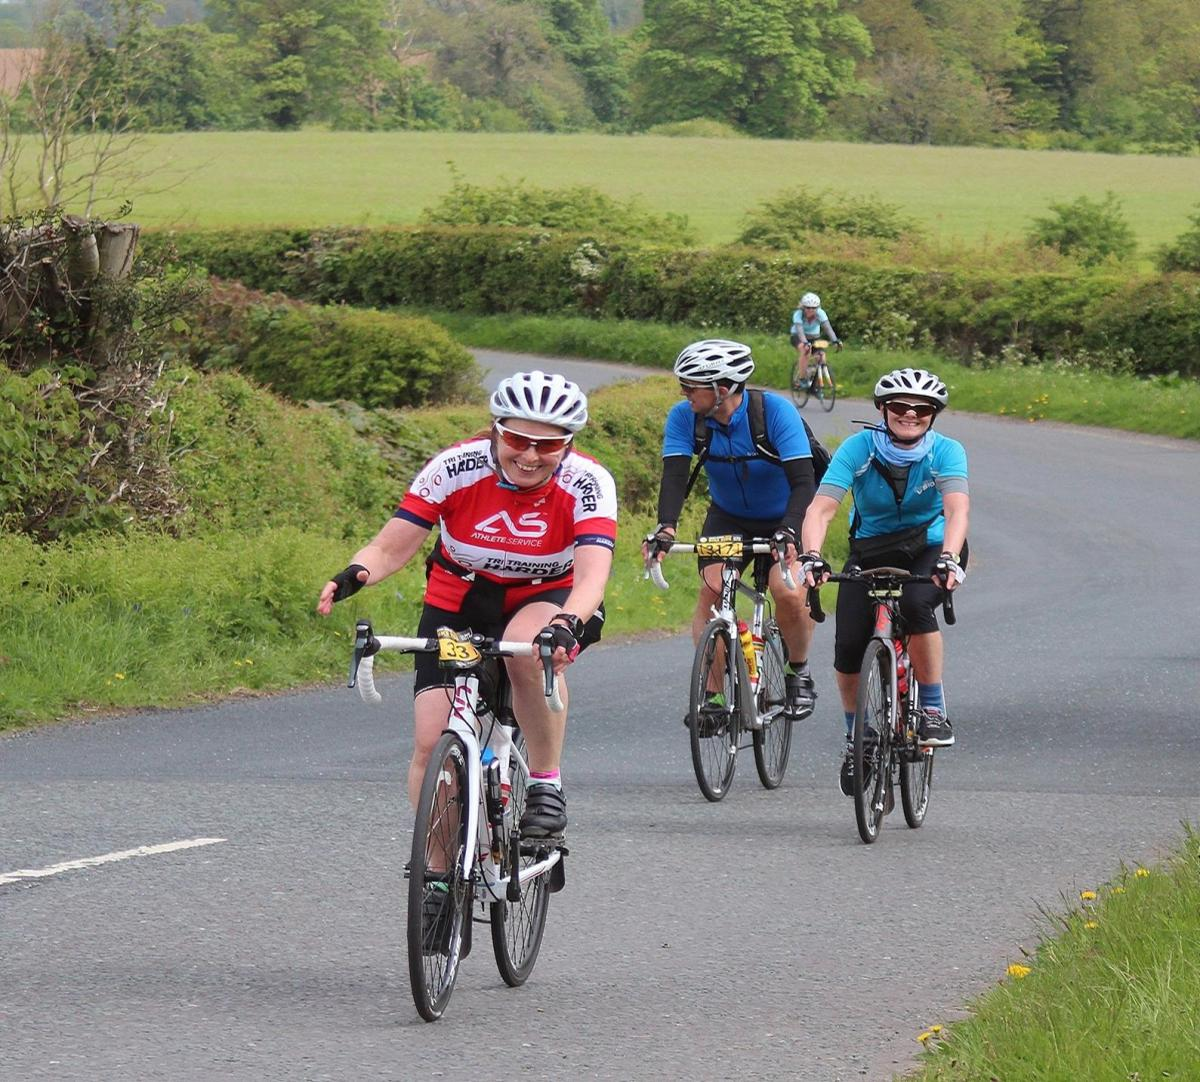 Ripon Rotary Bike Ride 2018 - 12 image